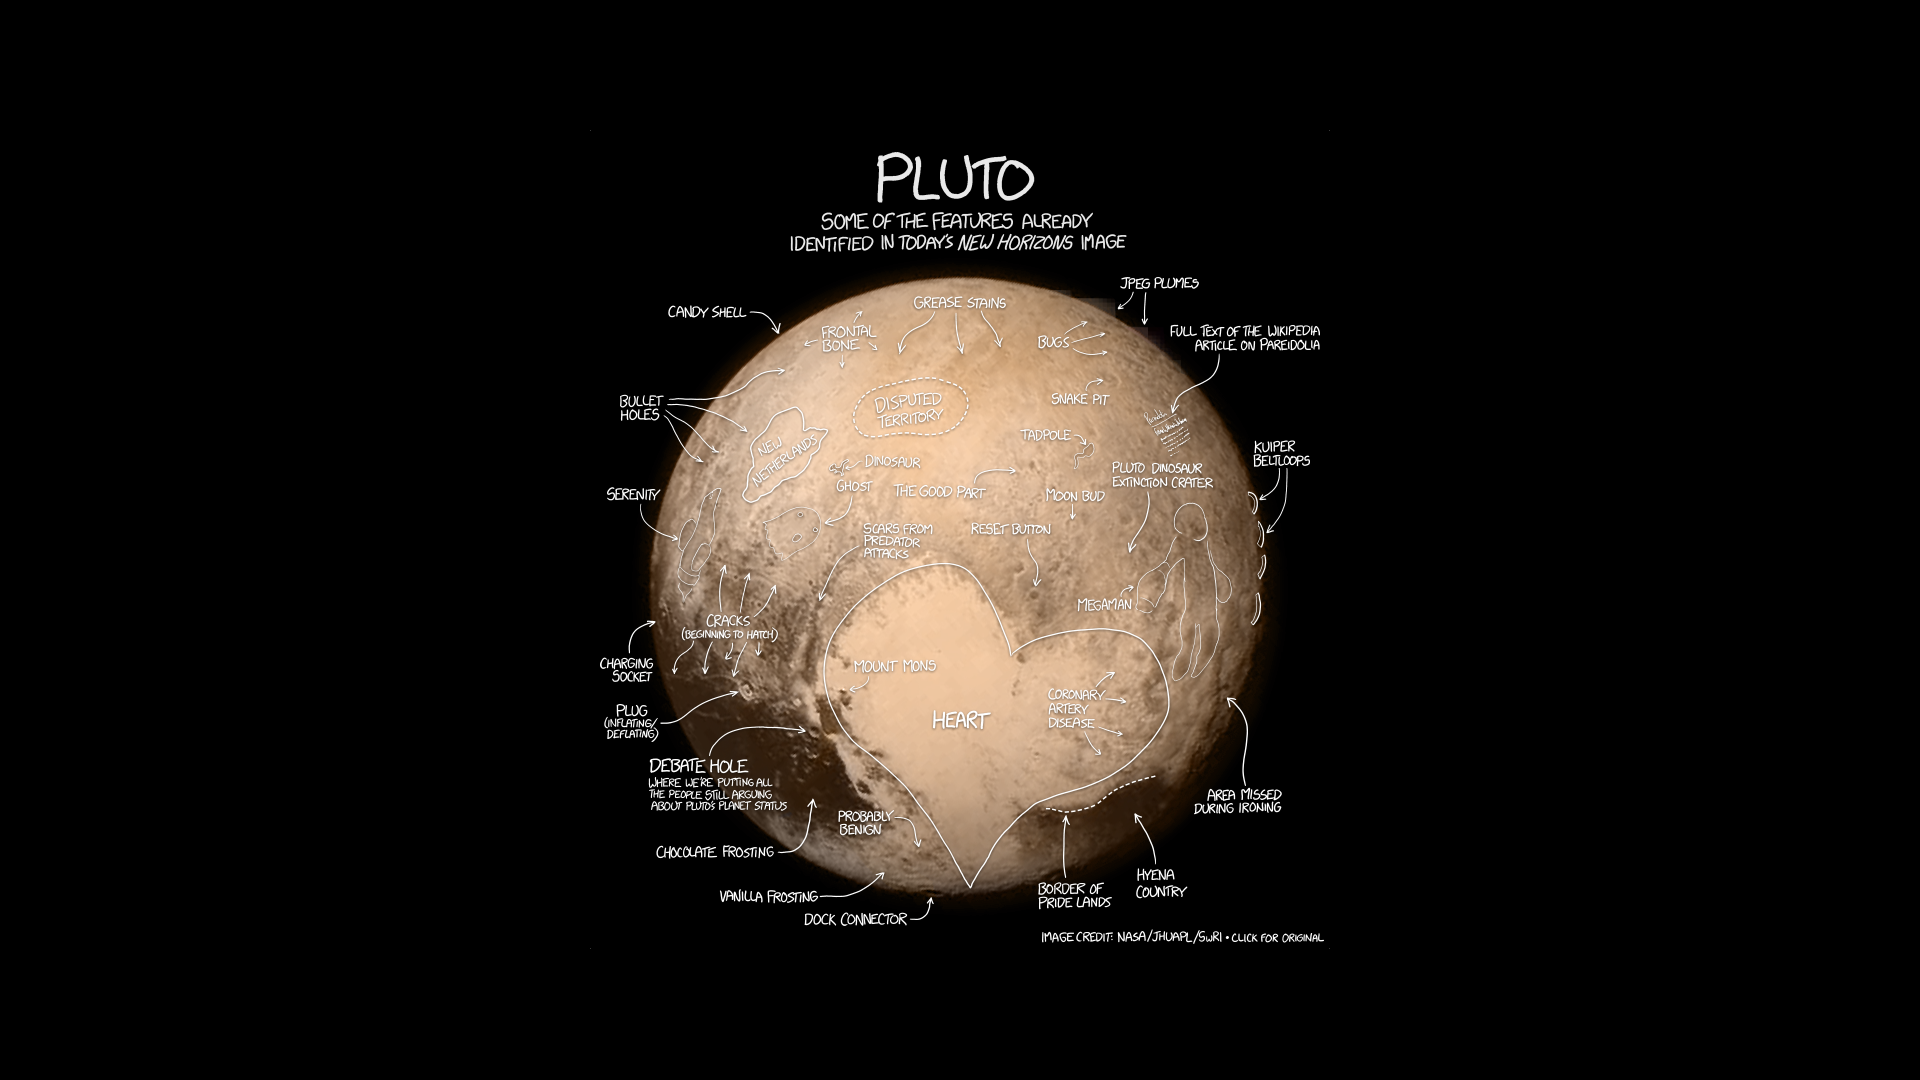 Pluto Wallpaper HD Pluto Wallpaper - W...